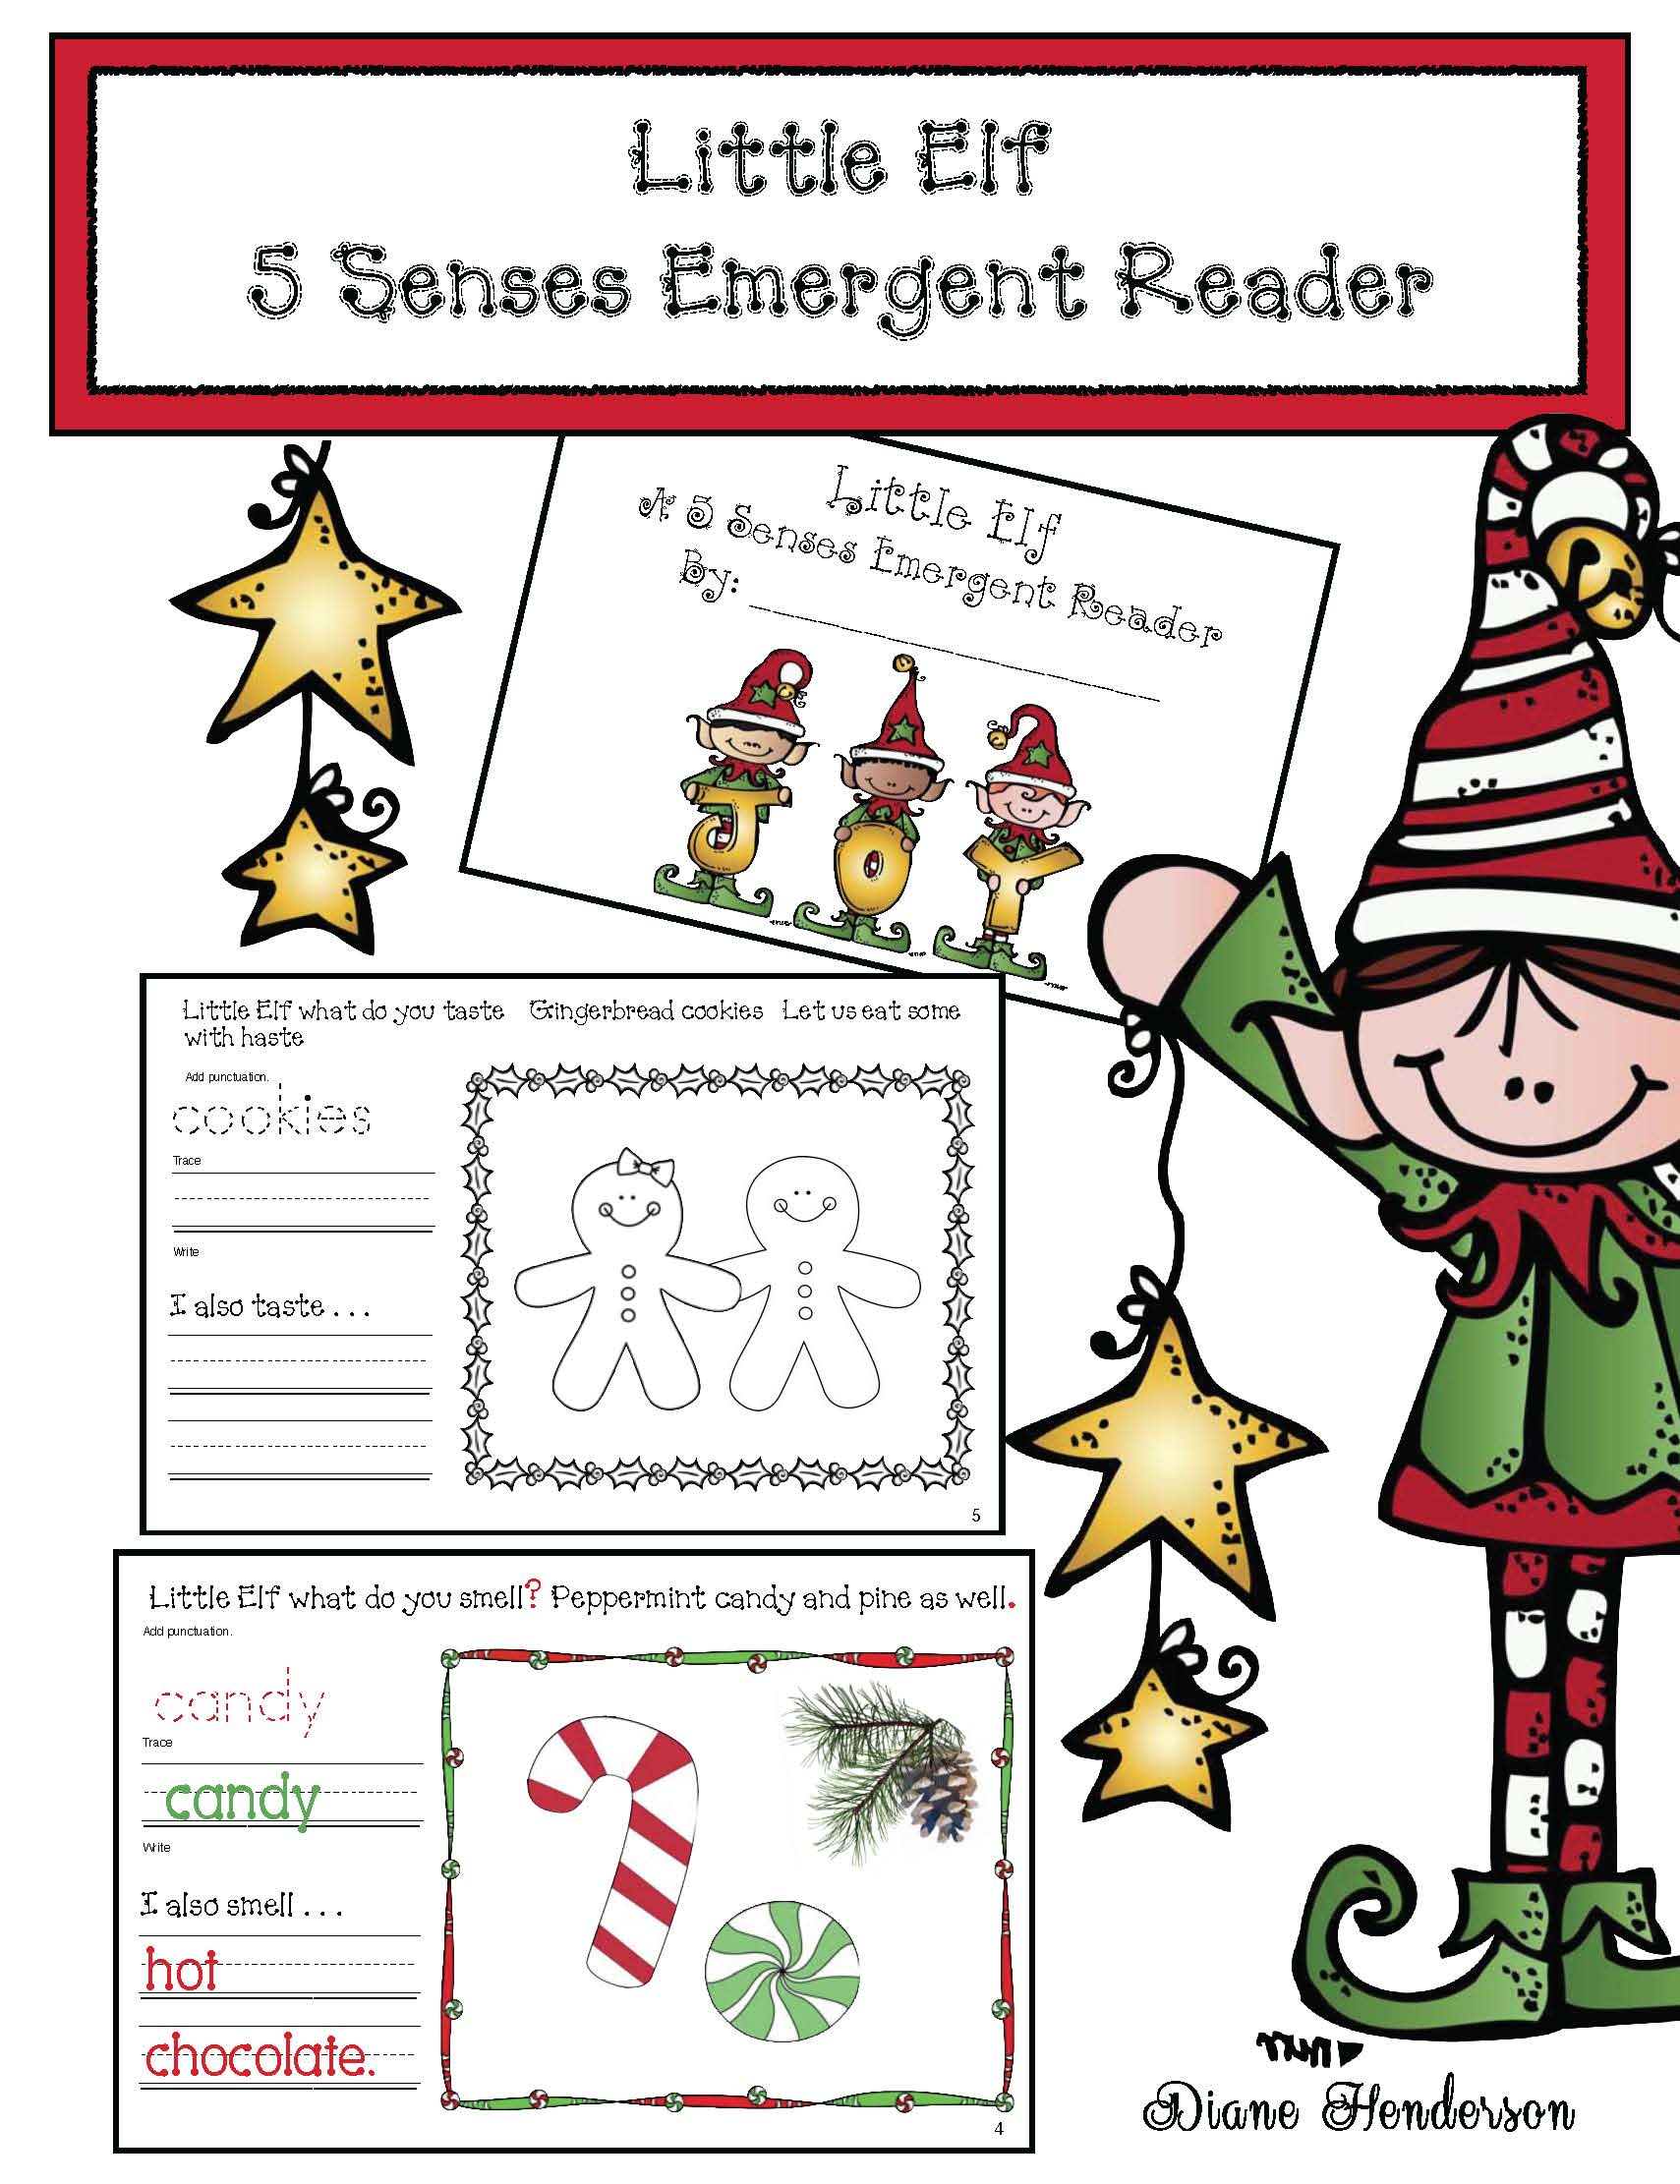 elf activities, elf emergent reader, emergent reader booklets, elf on a shelf activities